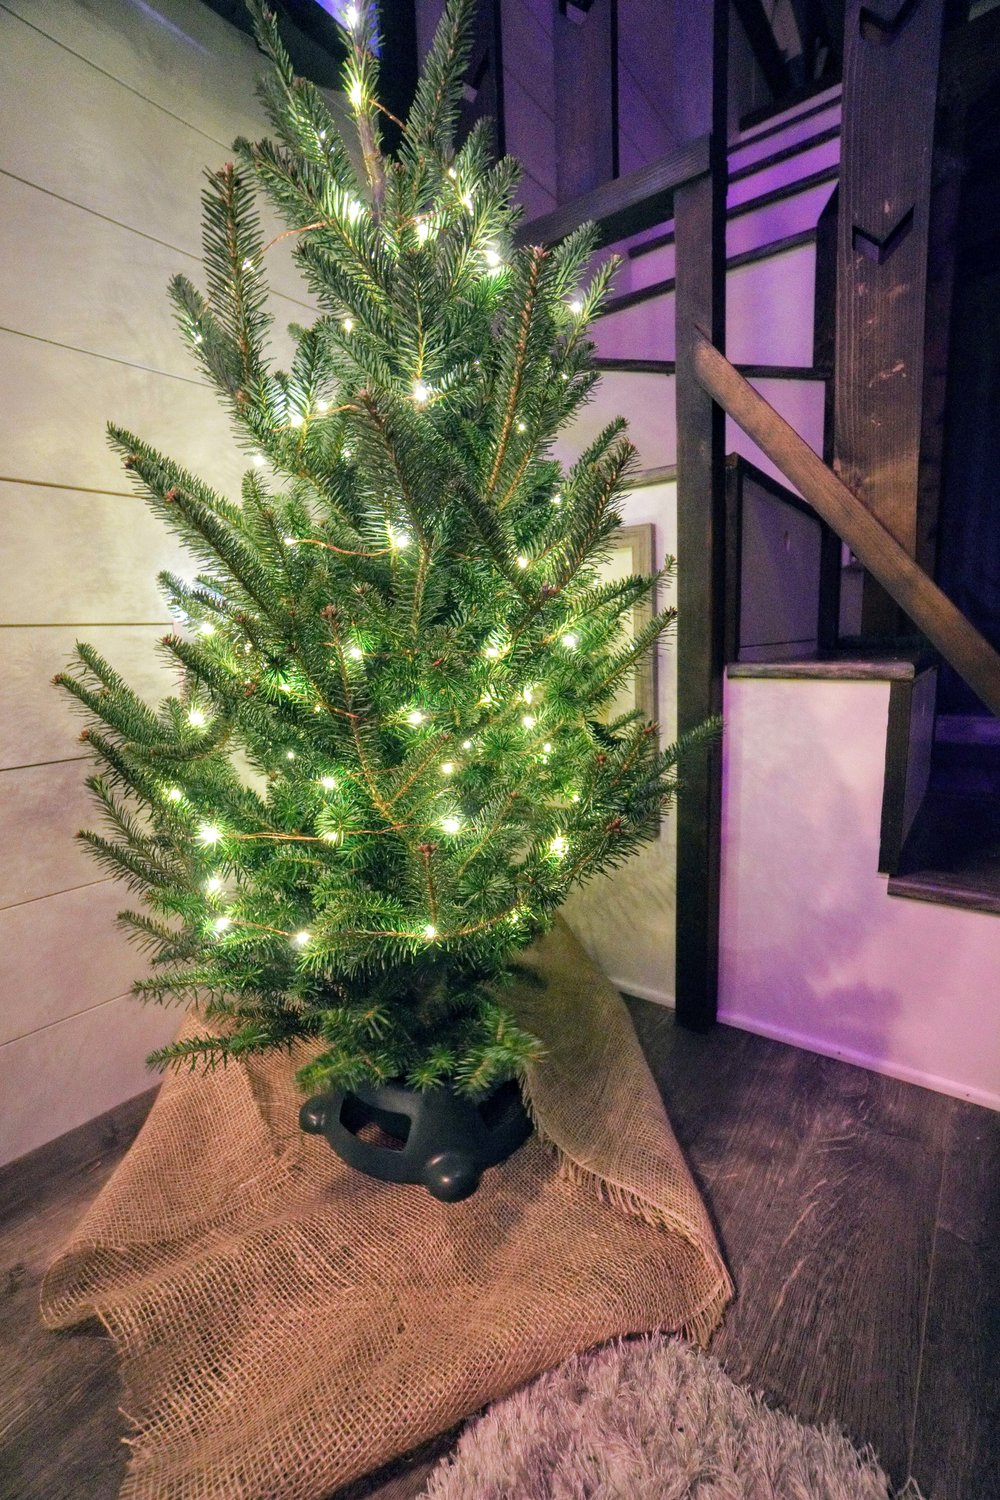 Tiny House Tiny home Christmas tree holiday tiny living celebrate small homes Diy decorations home design